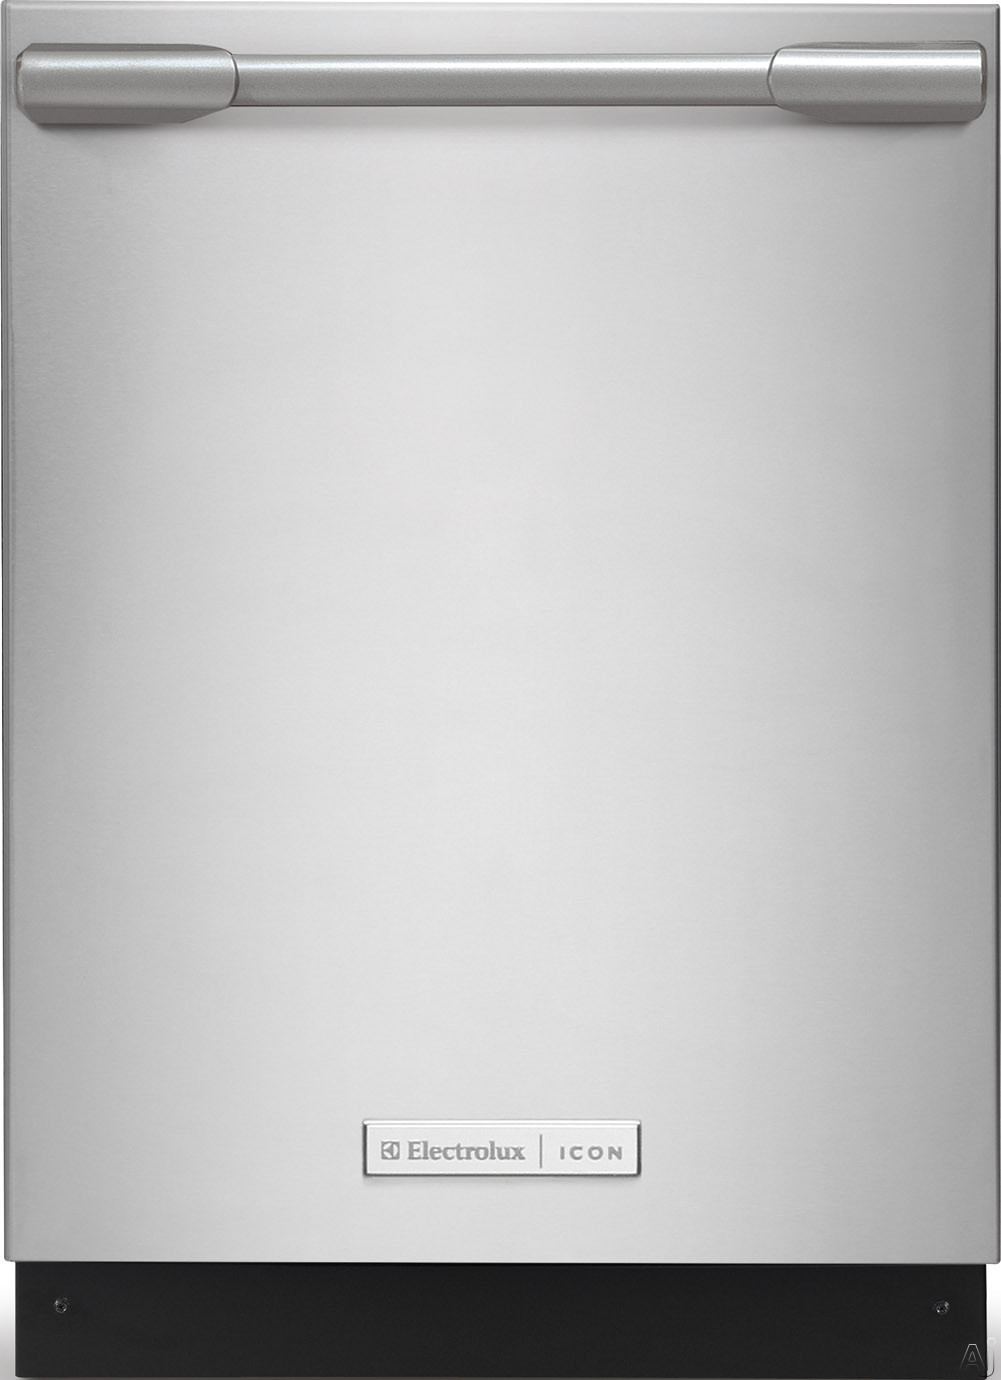 Electrolux ICON Professional E24ID74QPS Fully Integrated Dishwasher with 10 Wash Cycles, Sure-2-Fit Luxury-Glide Racking System, Adjustable Upper Rack, Cutlery Tray, SatelliteSpray Arm, Stemware Grips and Target Wash Jets E24ID74QPS